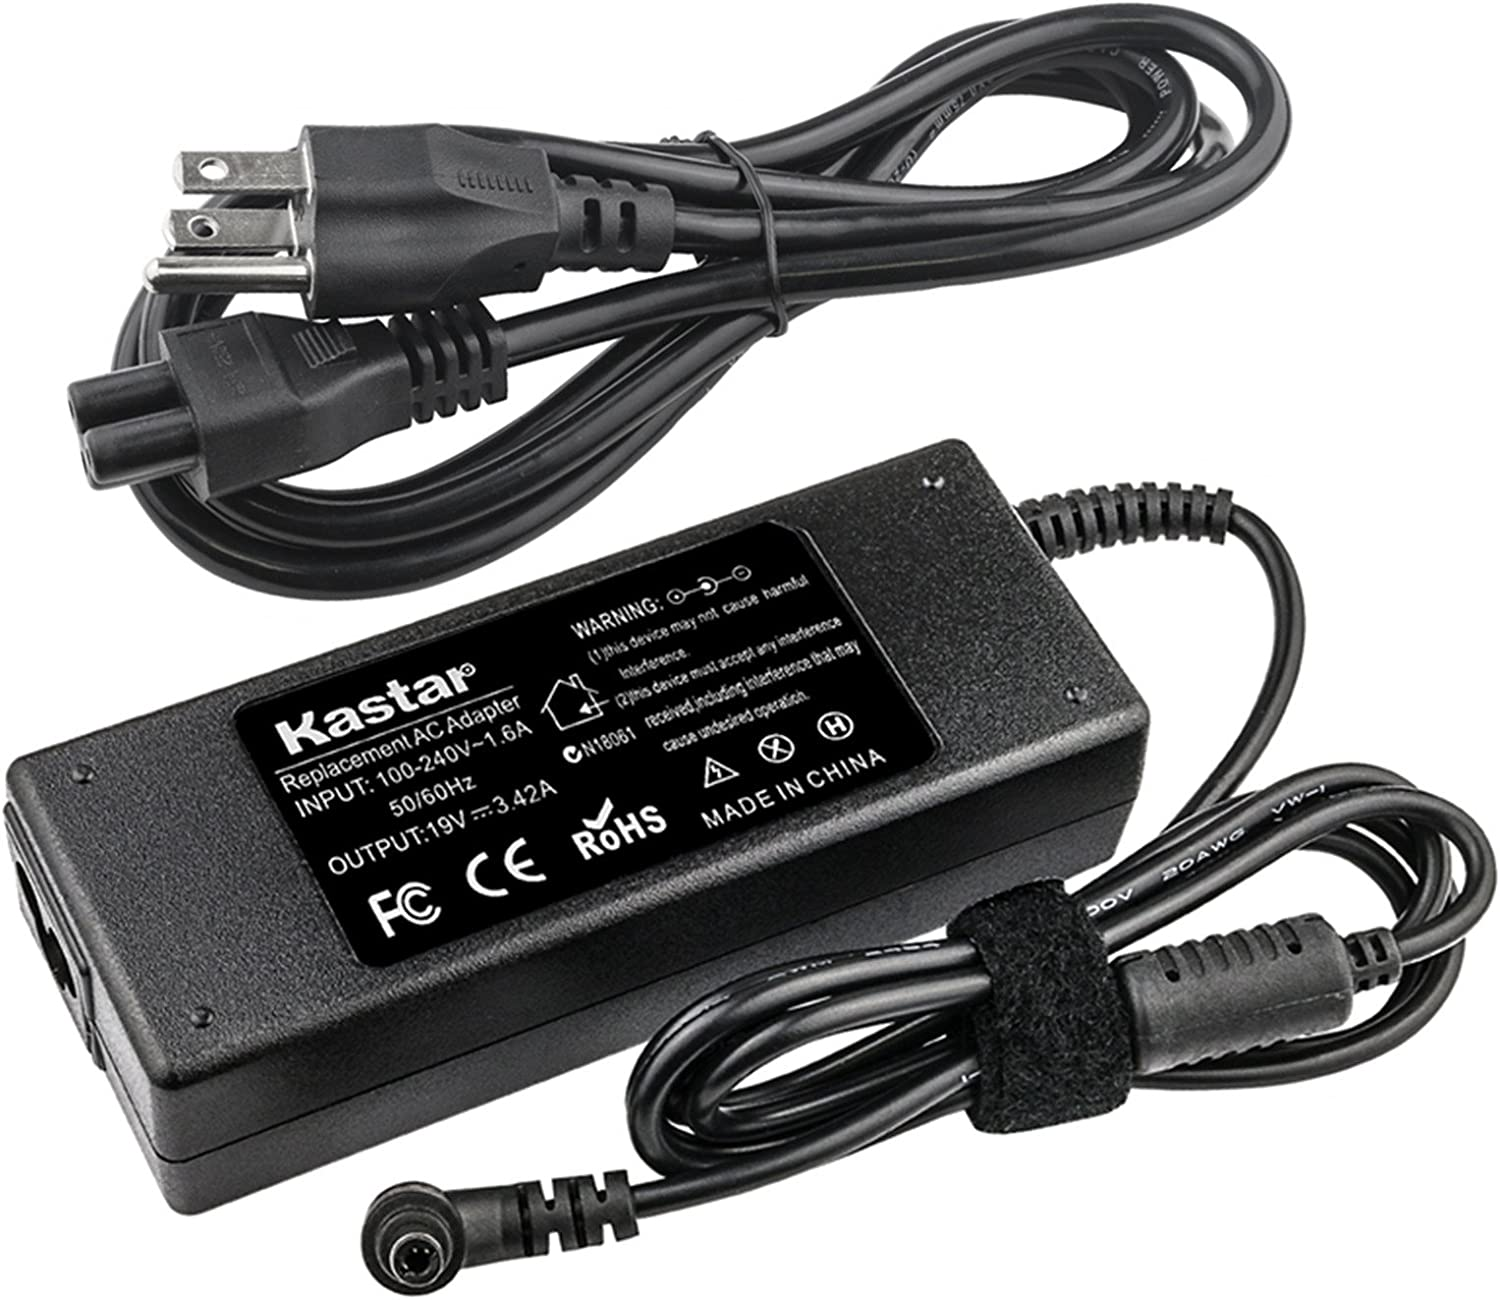 Replacement Laptop / Notebook AC - DC Adapter / Charger For Toshiba Satellite SP5104A C675D-S7101 C675D-S7109 C675D-S7310 C675D-S7328 C650D-BT4N11 C650-ST4NX1 C655D-5300 C655D-S5124 C655D-S5511 C655D-S5515 C655D-SP5186M C655D-SP5295M C655-S5121 C655-S5307 C655-S5544 C655-S9532A C655D-S5200 C655D-S5202 C655D-S5210 C655D-S5226 C655D-S5228 C655D-S5230 C655D-S5232 C655D-S5233 C655D-S5234 C655D-S5236 C655D-S9511D C655D-SP4131l C655D-SP4151M C655-S5060 C655-S5061 C650-BT4N12 C650-BT4N13 C650D-ST4N01 C650D-ST4NX1 C650-ST2N01 C650-ST2NX1 C650-ST2NX2 C650-ST3NX1 C650-ST4N02 C655D-S5084 C655D-S5089 C655D-S5120 C655D-S5126 C655D-S5192 C675-S7103 C675-S7104 C675-S7106 C675-S7133 C675-S7308 C675-S7318 C675-S7321